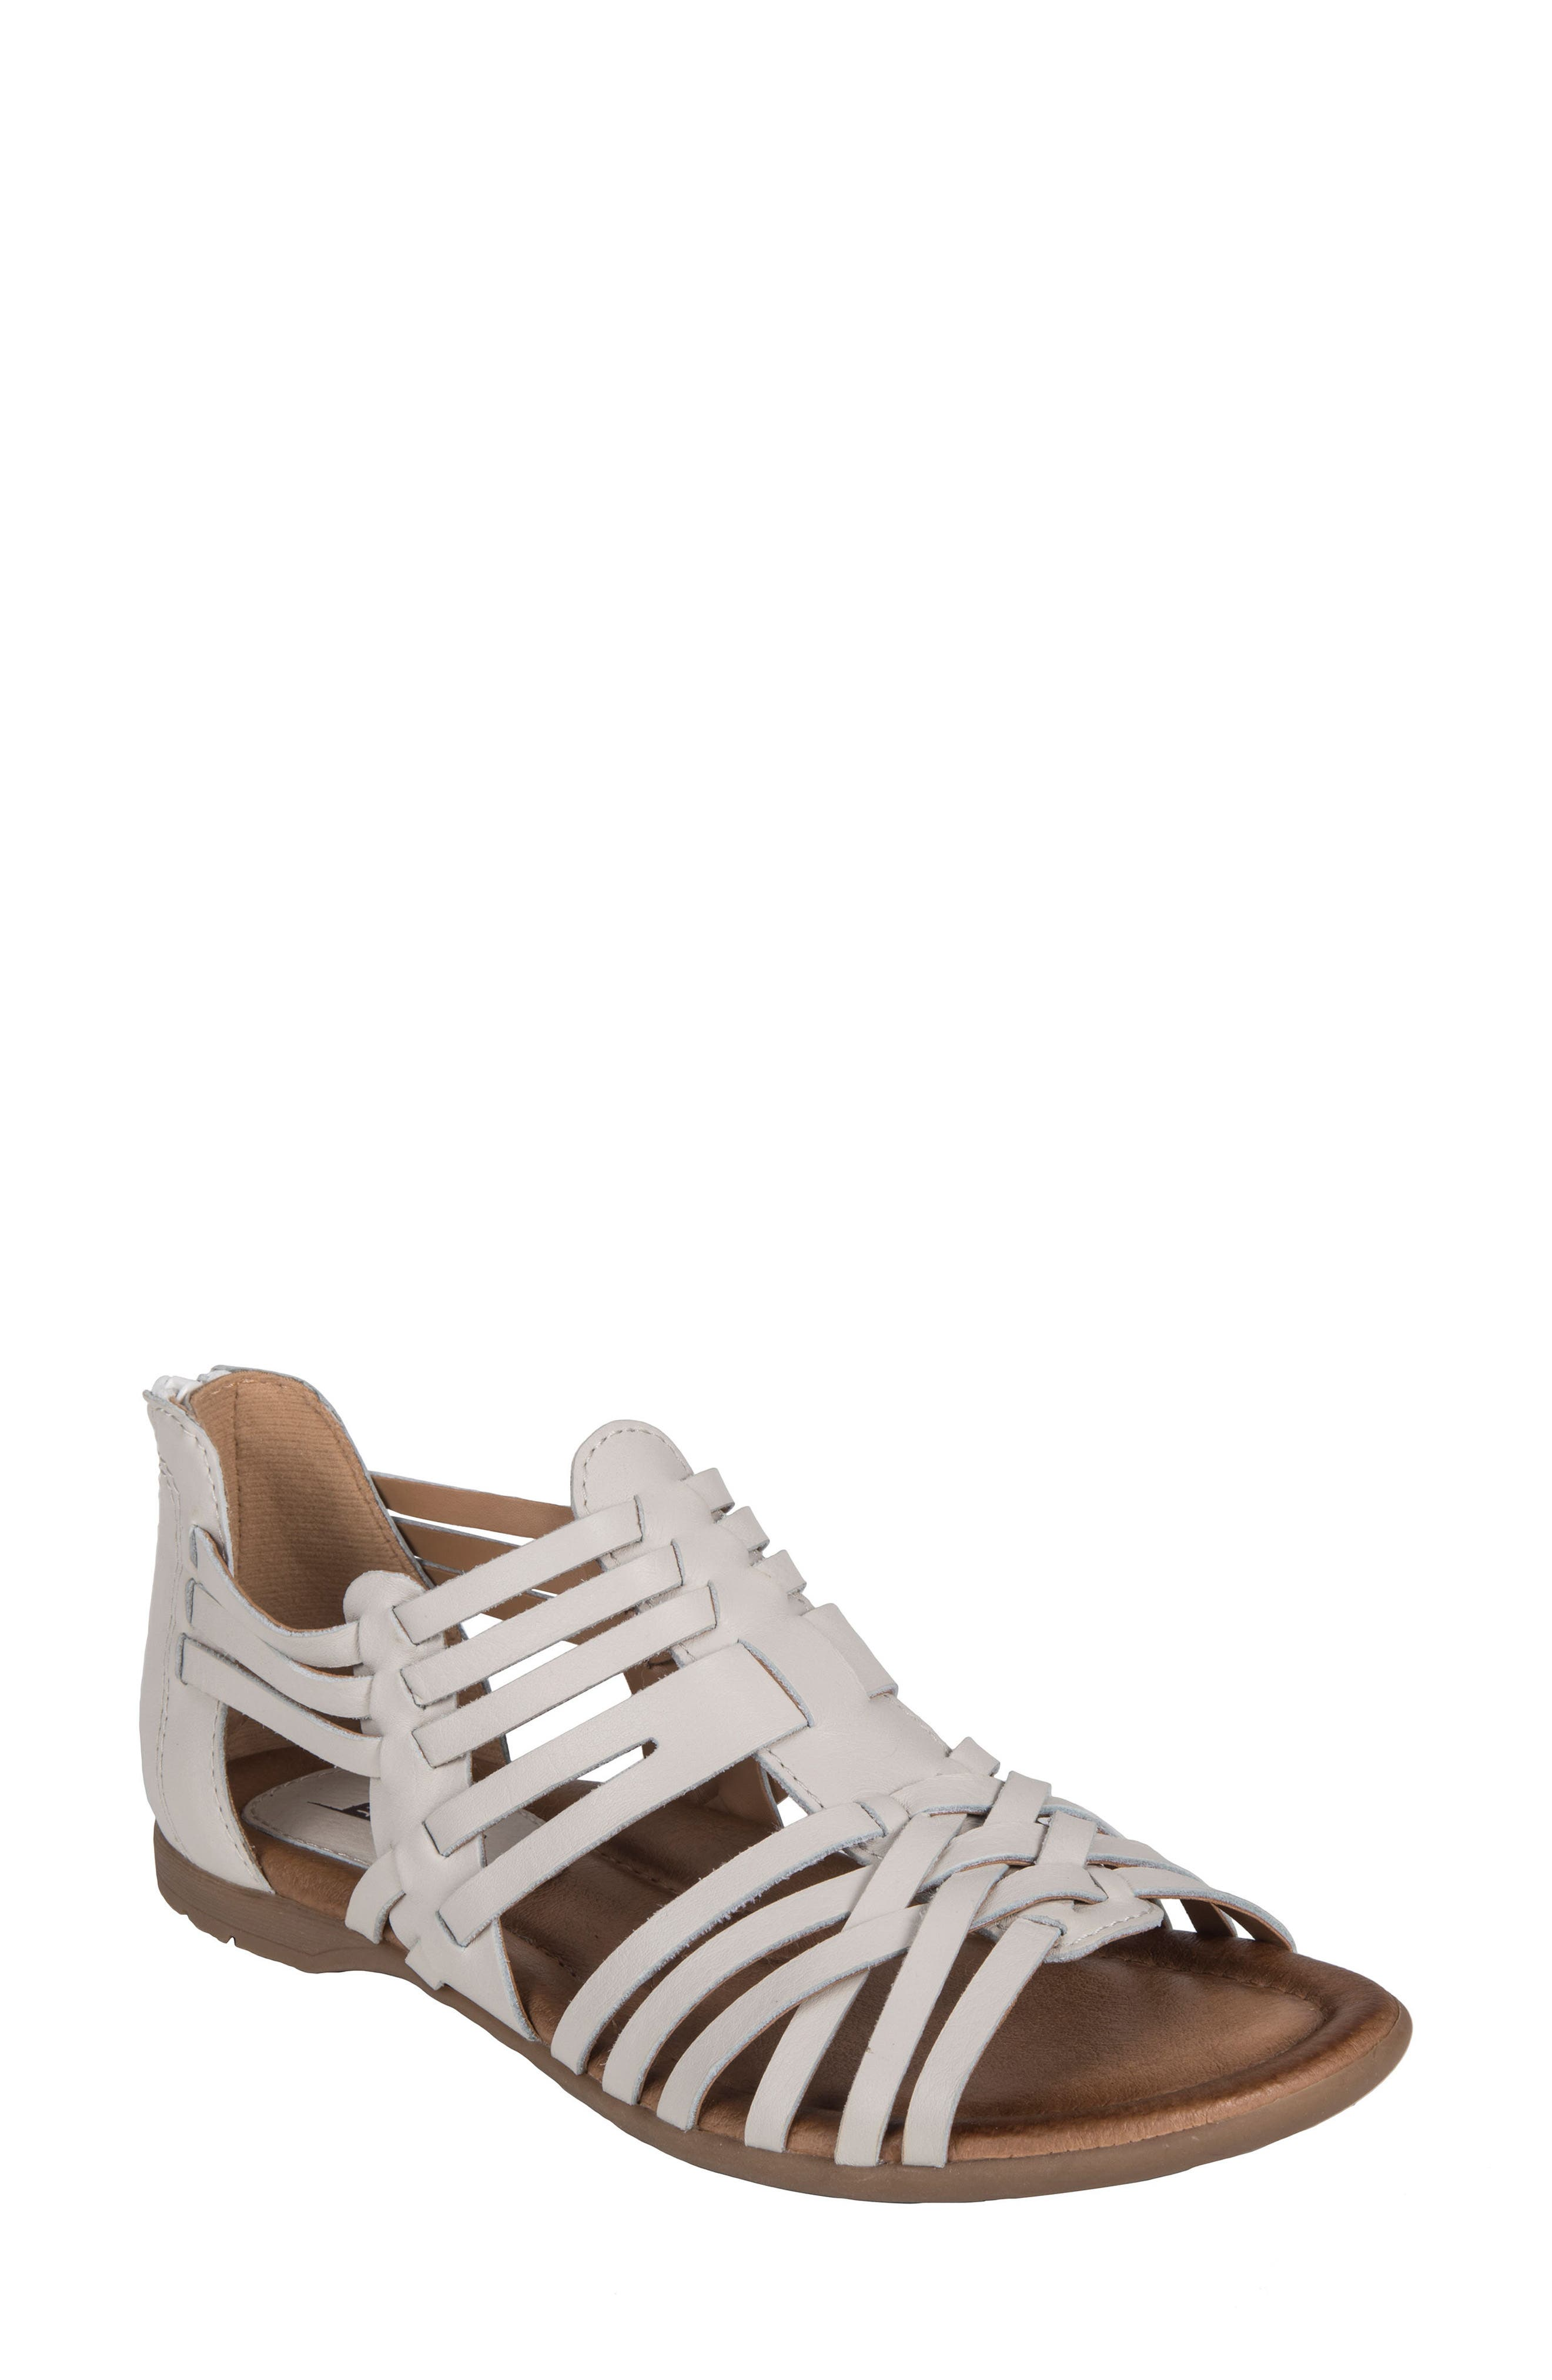 Bonfire Strappy Sandal,                         Main,                         color, OFF WHITE LEATHER